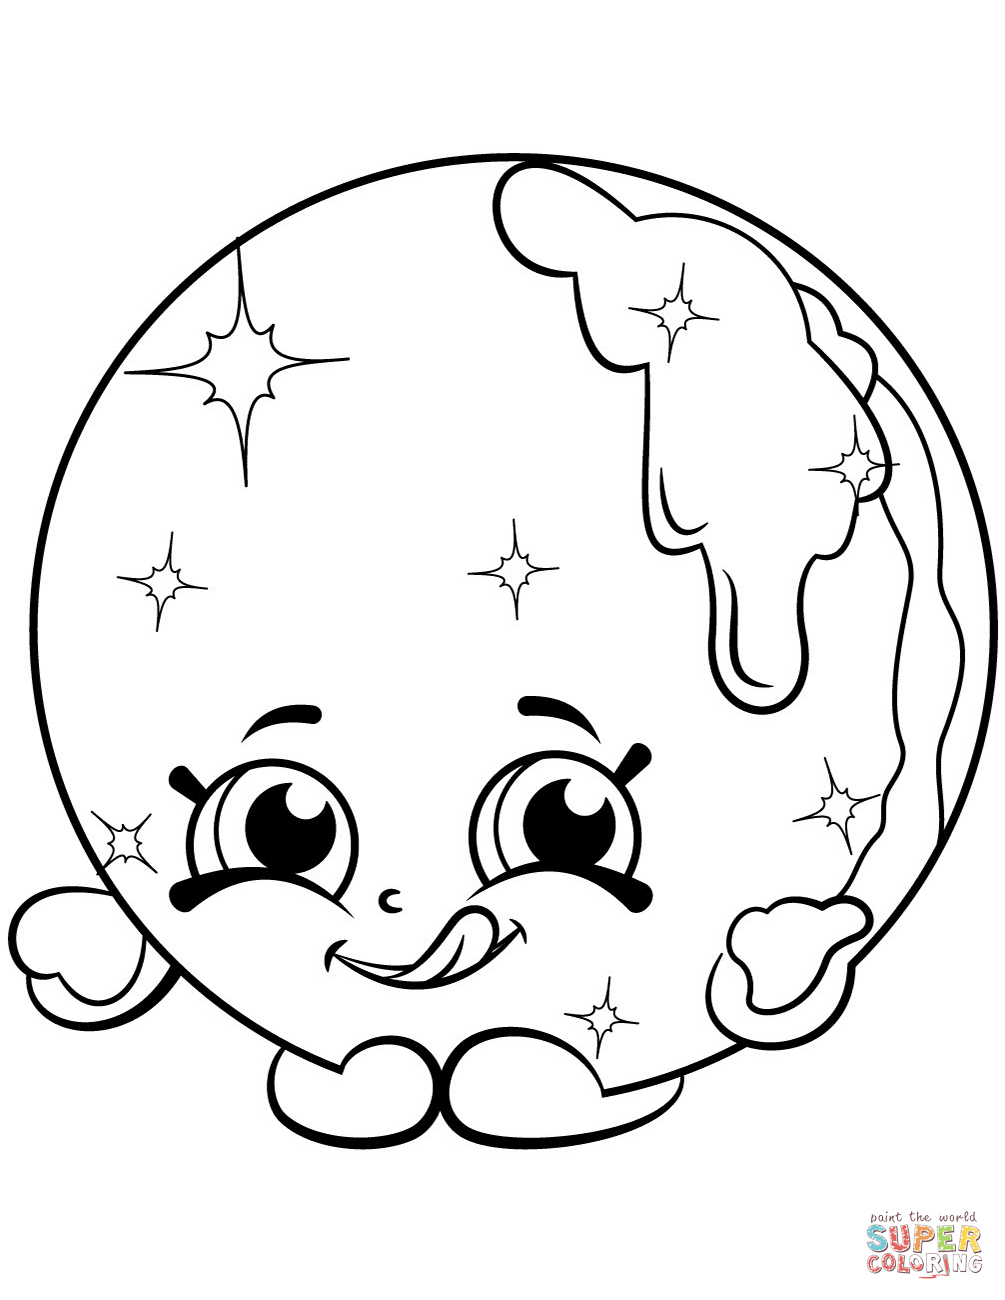 1005x1300 Sweat Leafy Roll Of Toilet Paper Shopkin Coloring Page Free